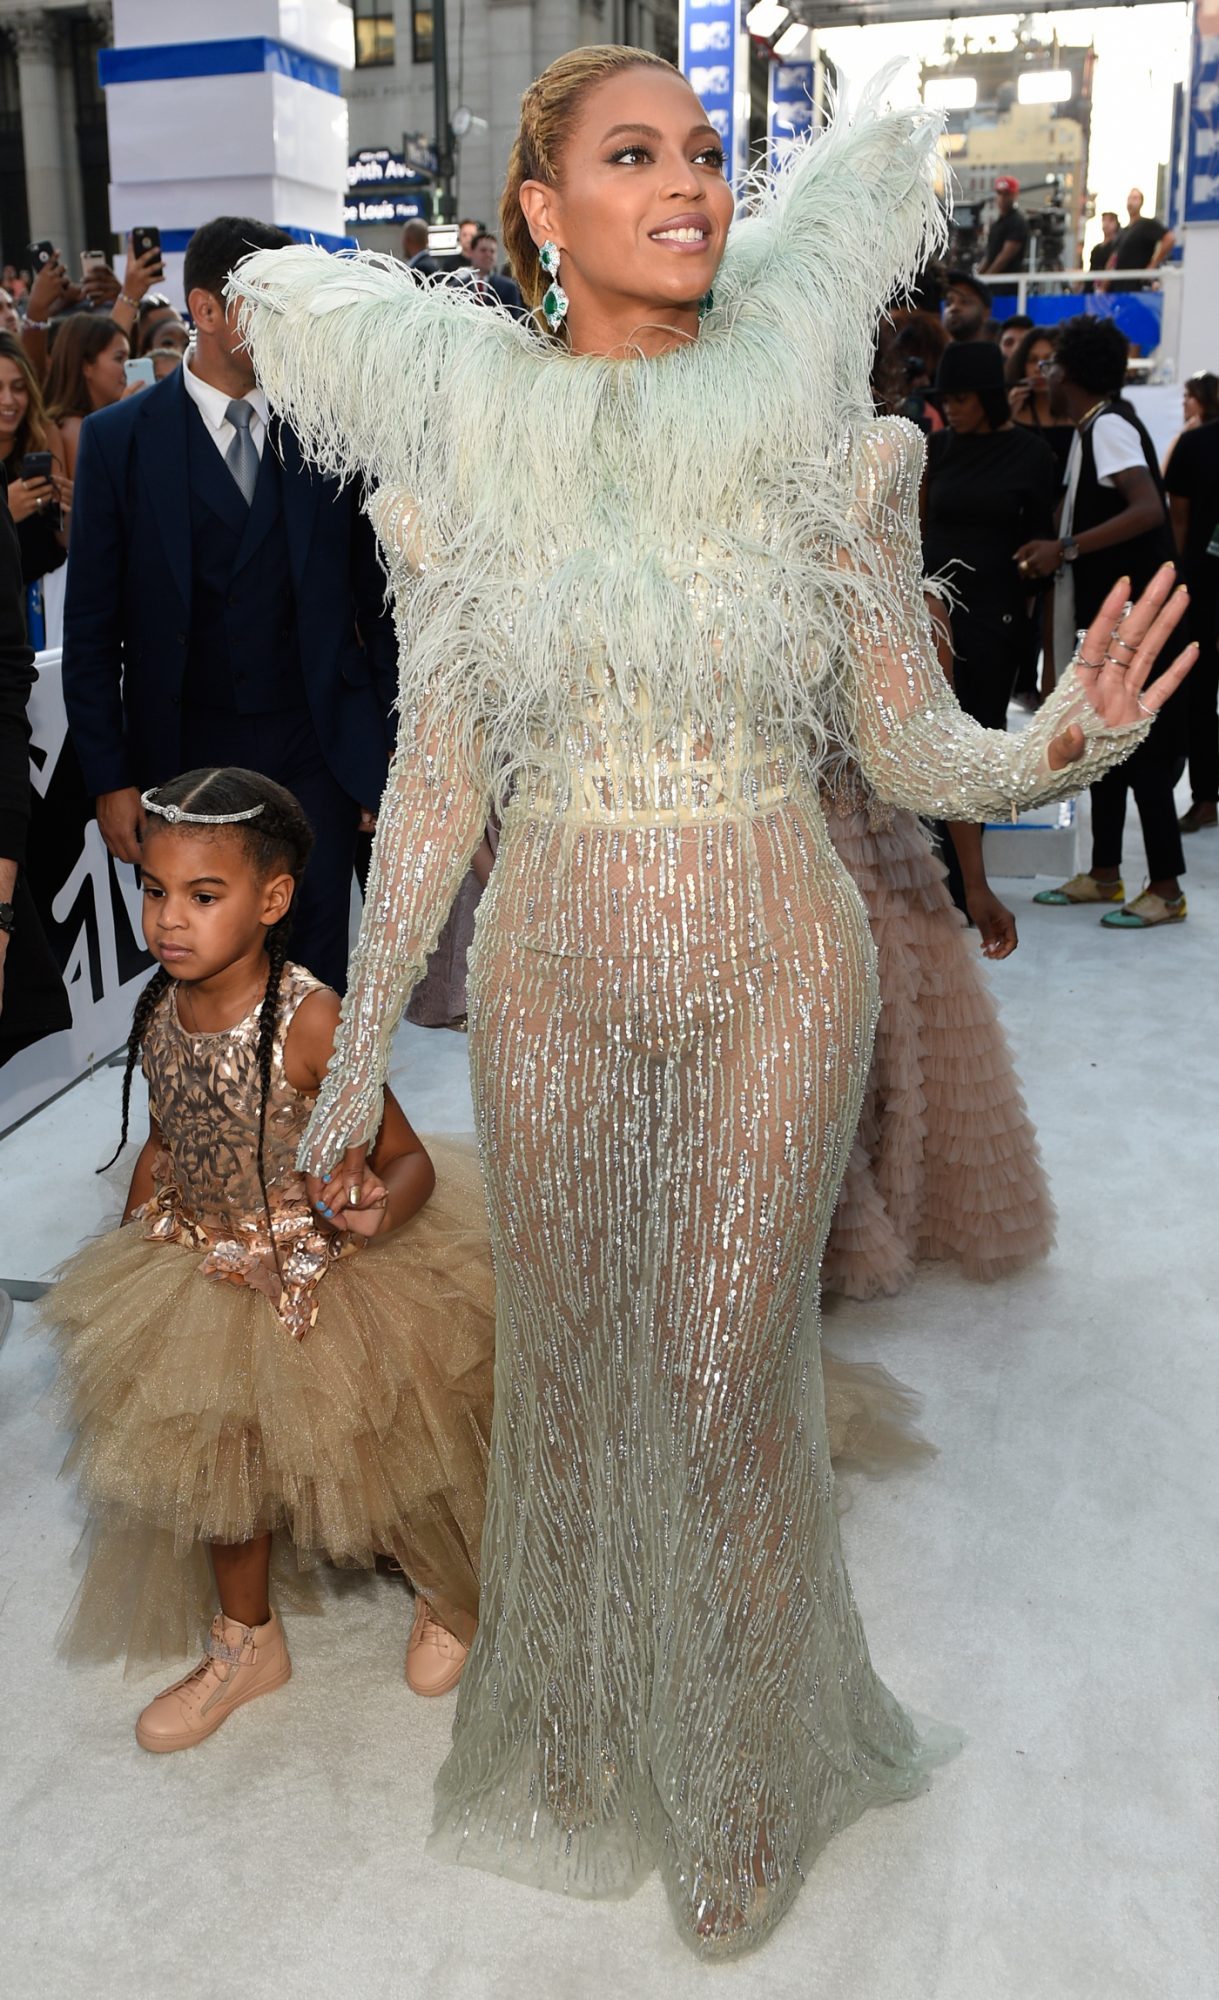 VMA - Blue Ivy & Beyonce Embed 4